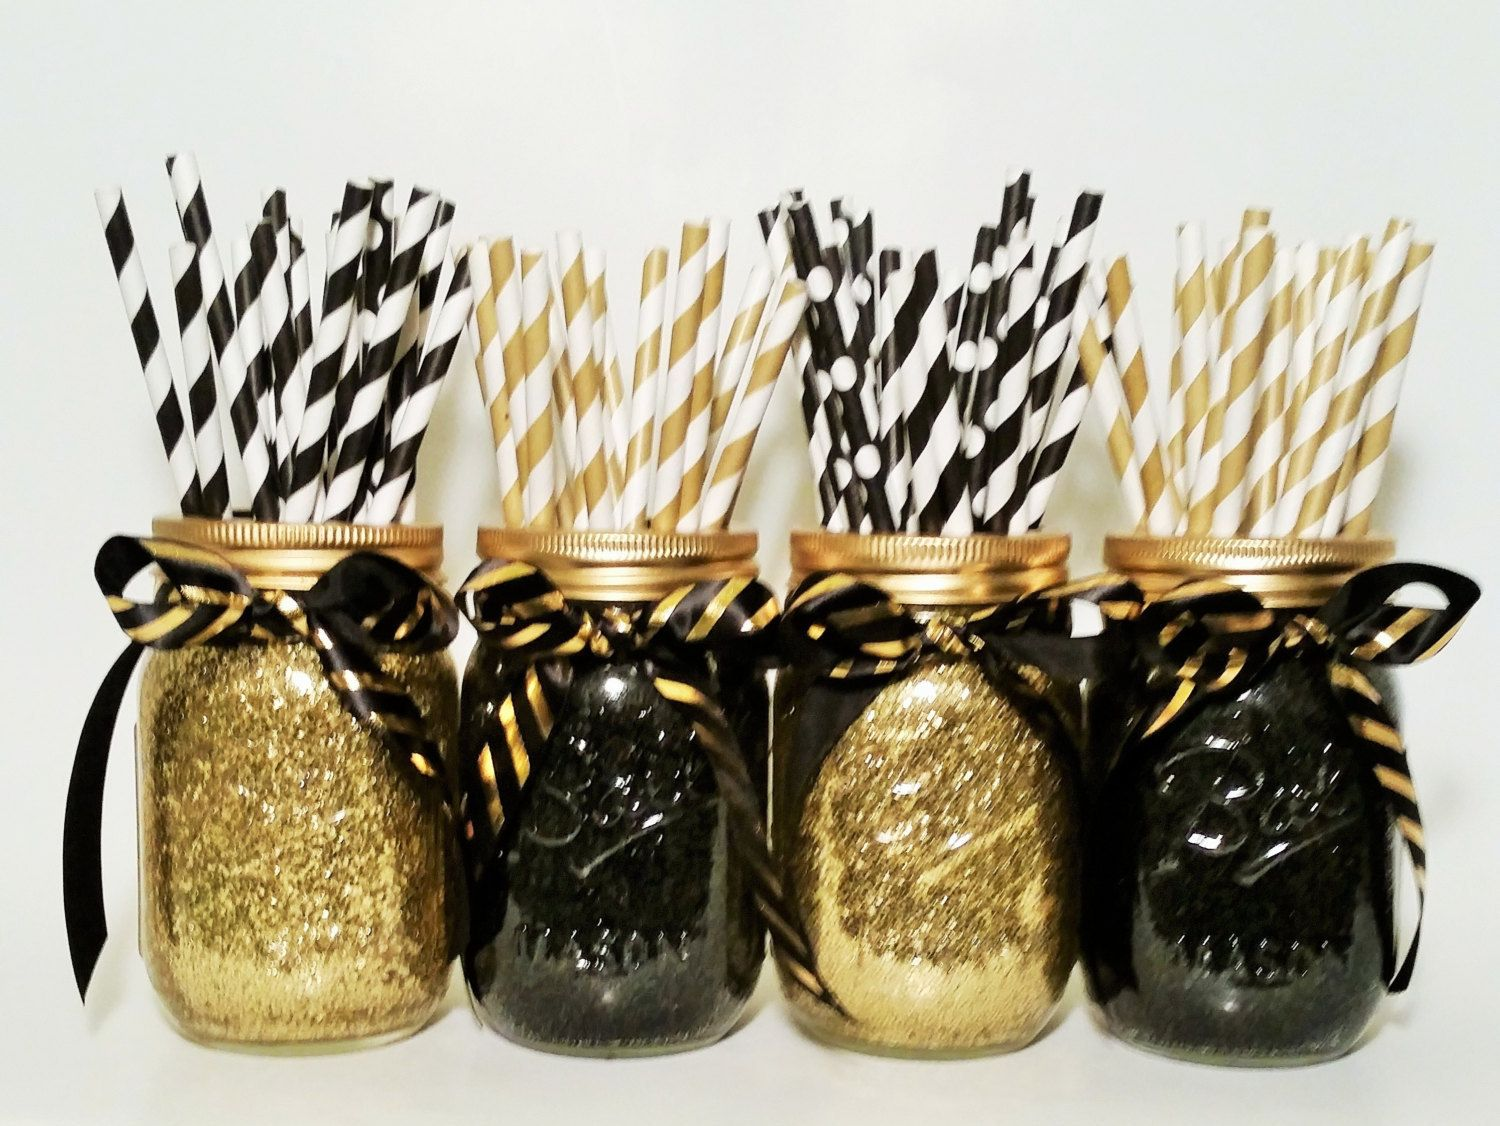 graduation party decorations mason jar centerpiece wedding centerpiece engagement party decor. Black Bedroom Furniture Sets. Home Design Ideas